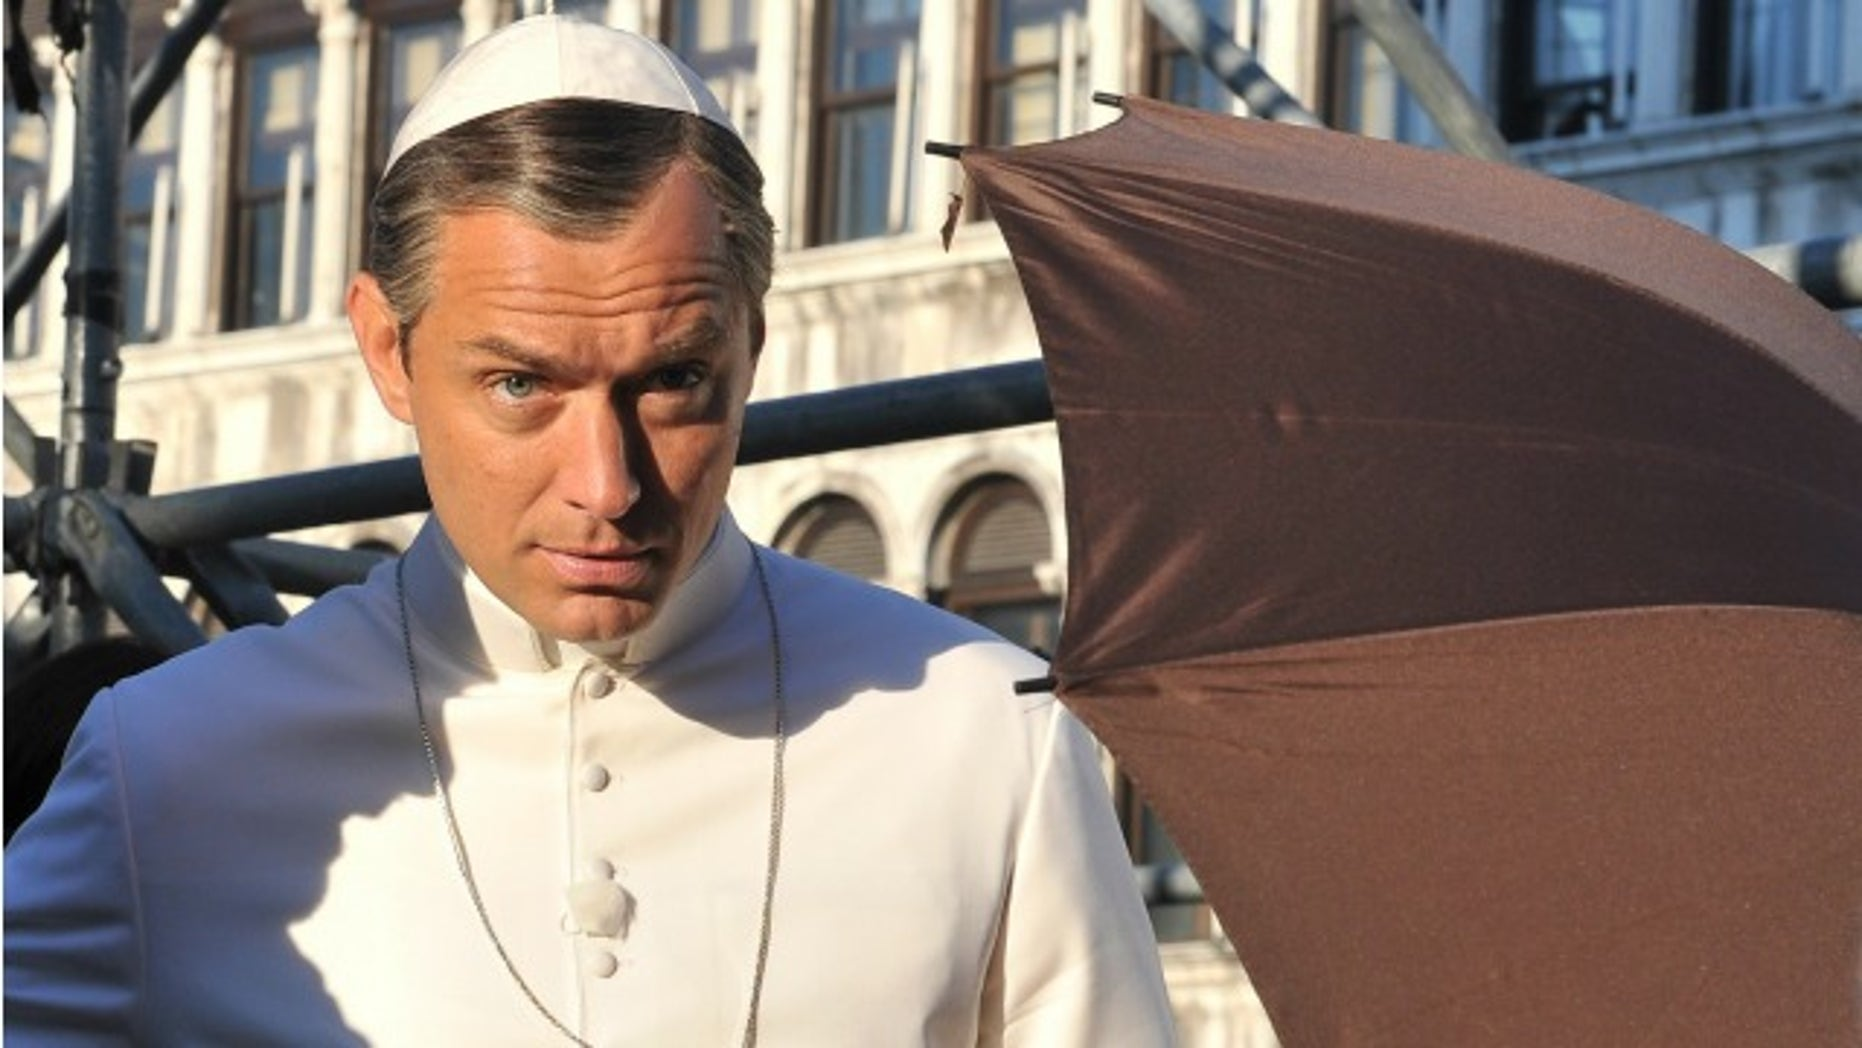 """Actor Jude Law is seen on the set of Italian director Paolo Sorrentino's TV series """"The Young Pope"""", in Venice's St. Mark's Square, Italy, Tuesday, Jan. 12, 2016. Law plays the part of a fictional Pope Pius XIII as the first American pope. (AP Photo/Luigi Costantini)"""